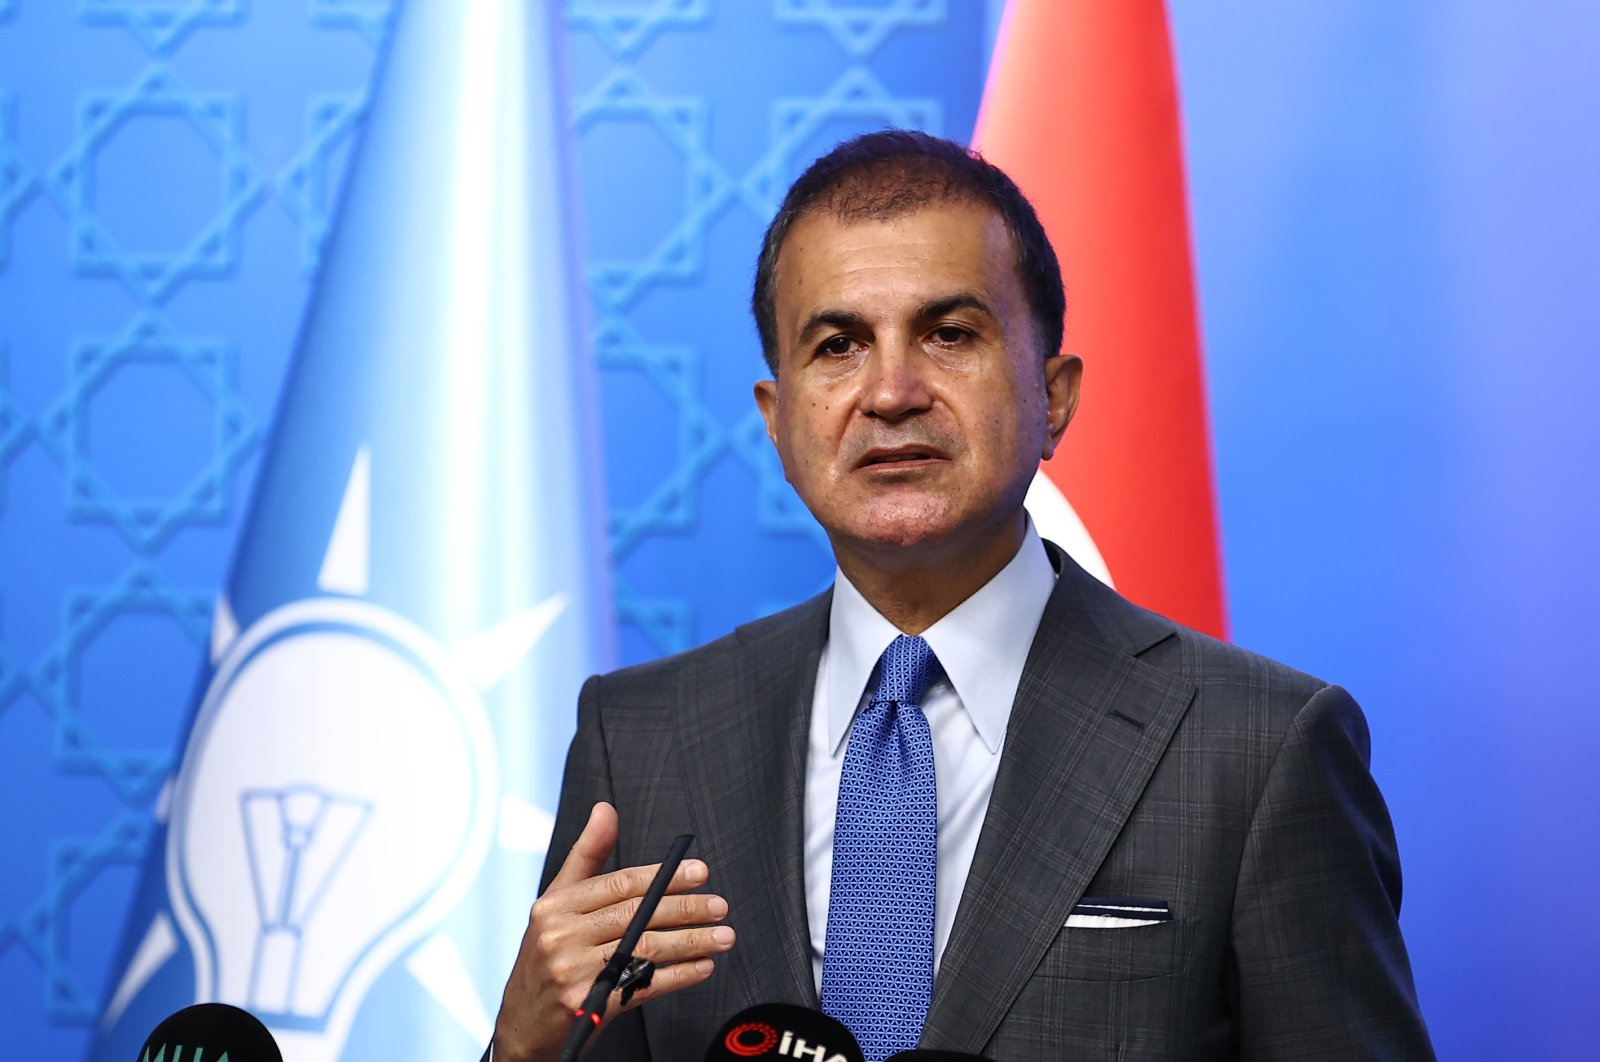 Ömer Çelik, spokesperson for the Justice and Development Party (AK Party), at a press conference in Ankara, Turkey, July 7, 2021. (AA Photo)